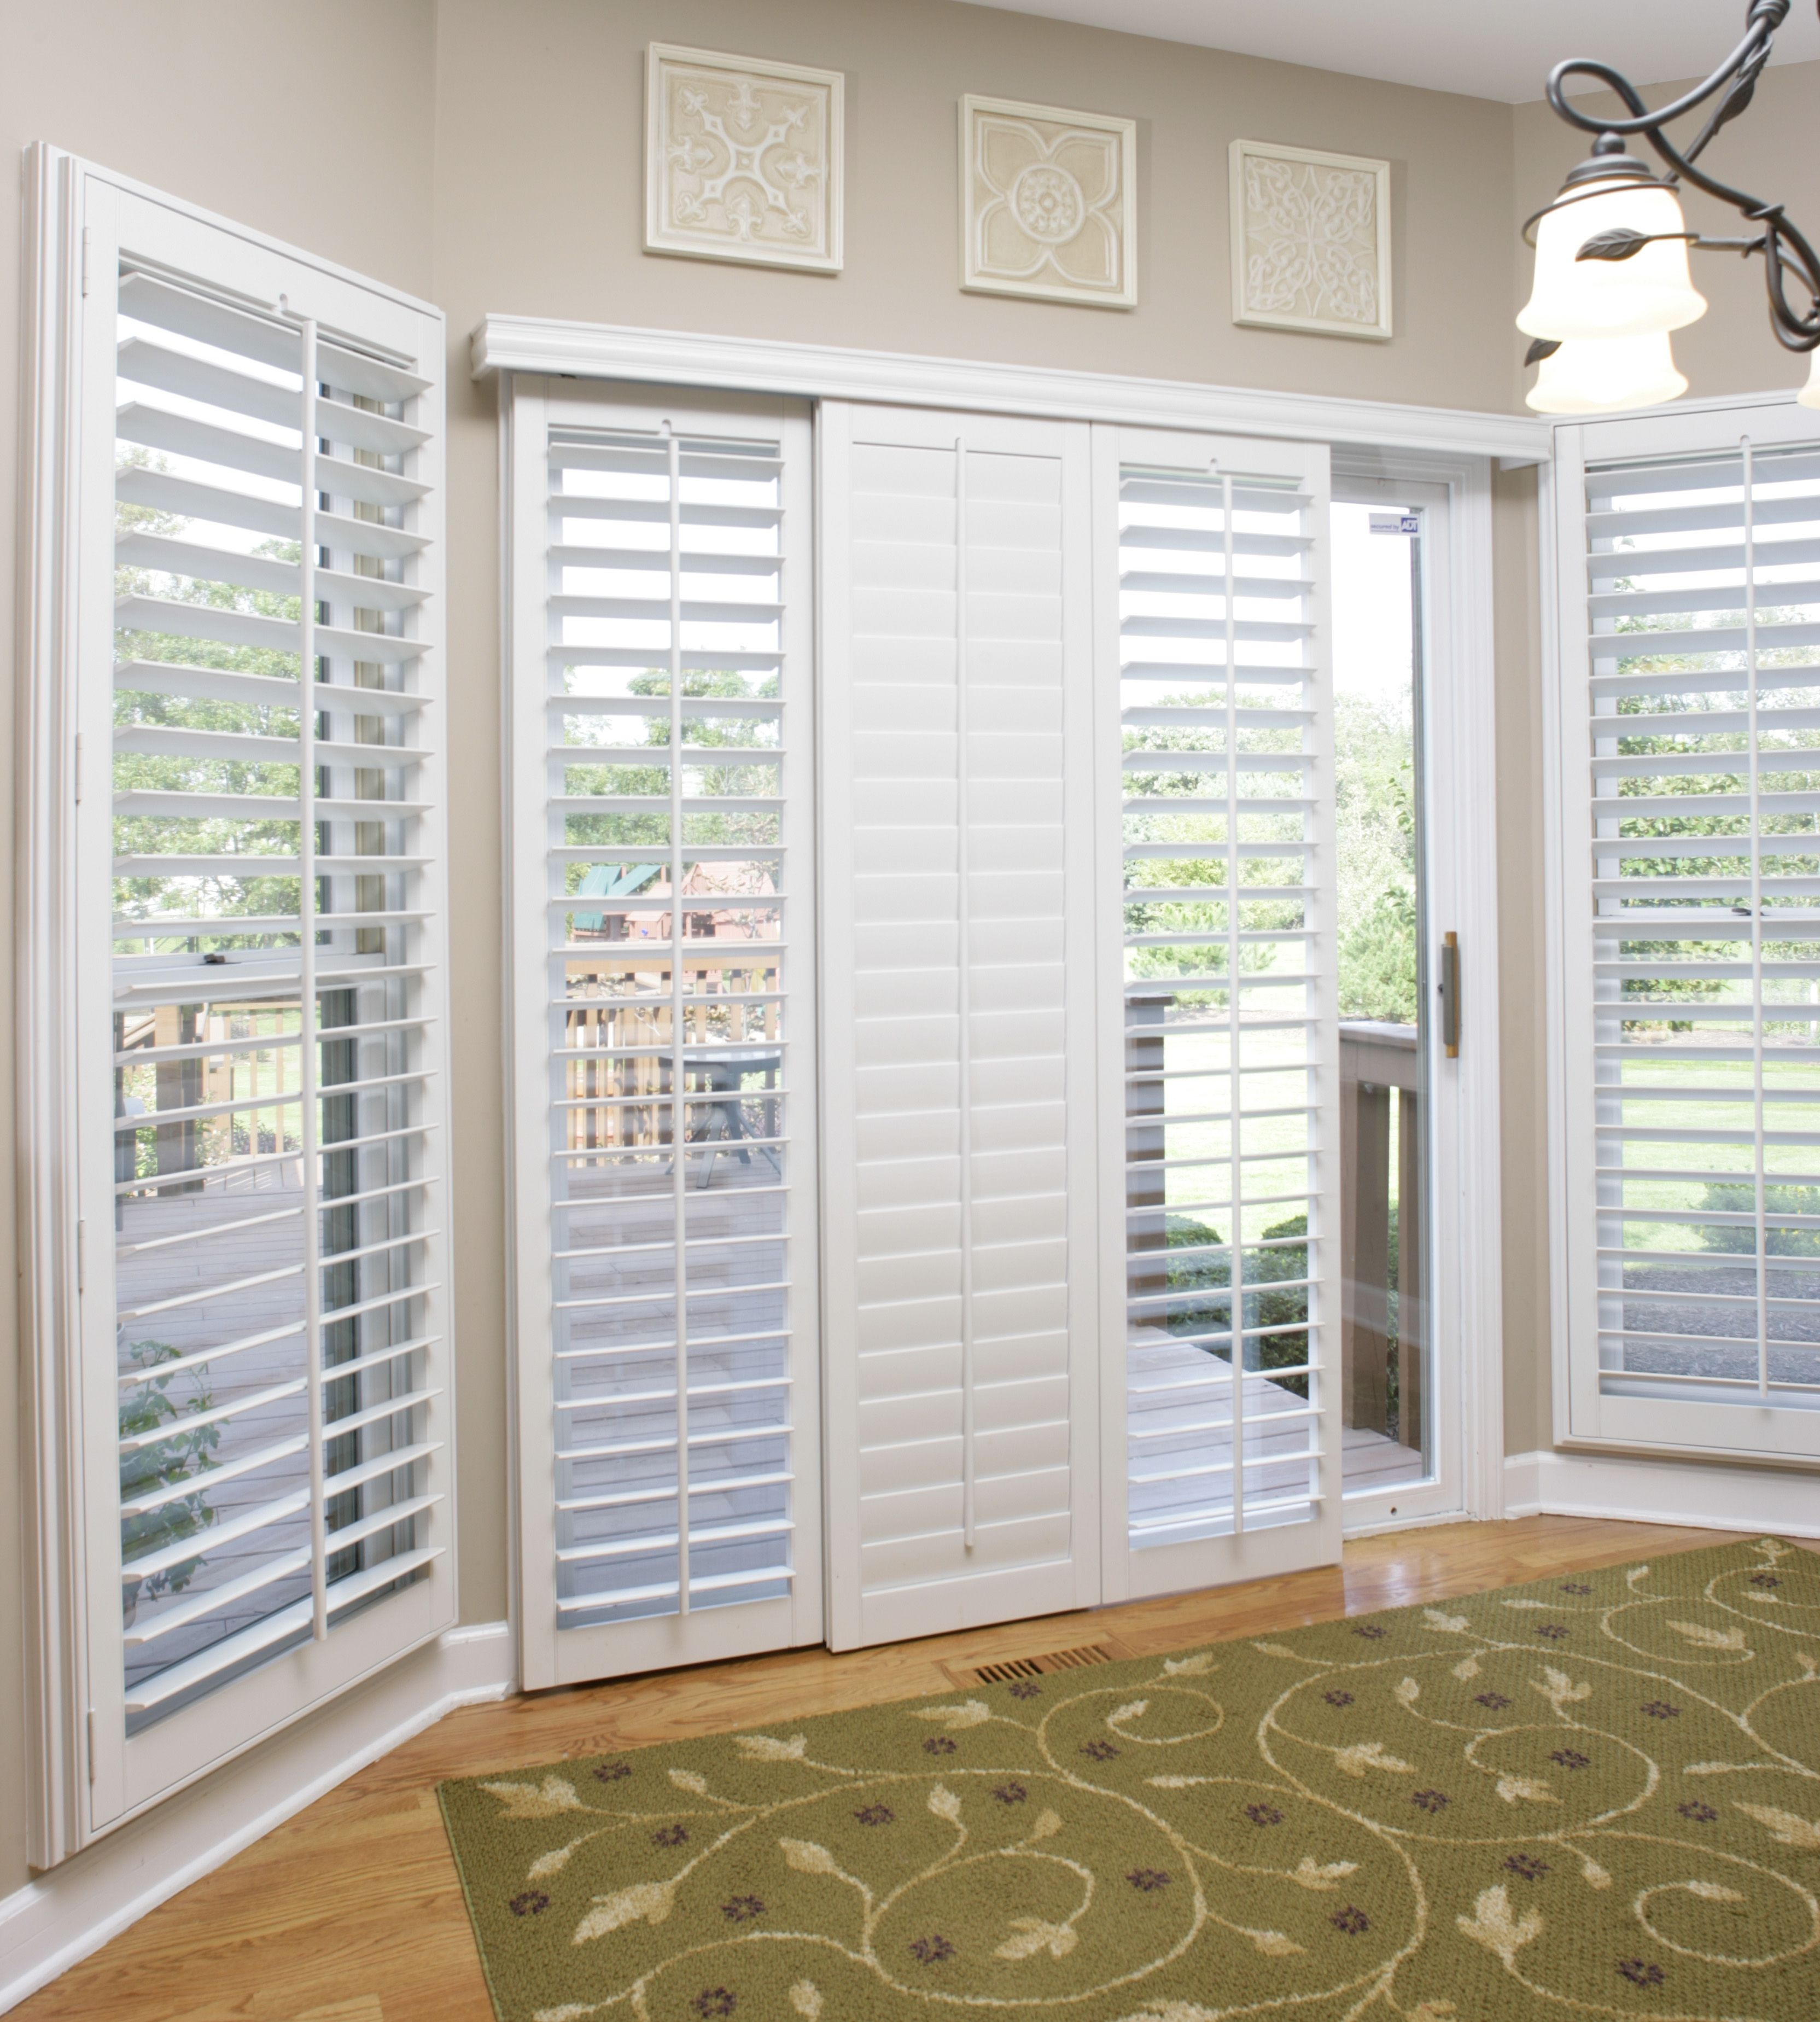 Sliding Glass Door Coverings: Problem: Too Much Light And No Privacy With Sliding Glass